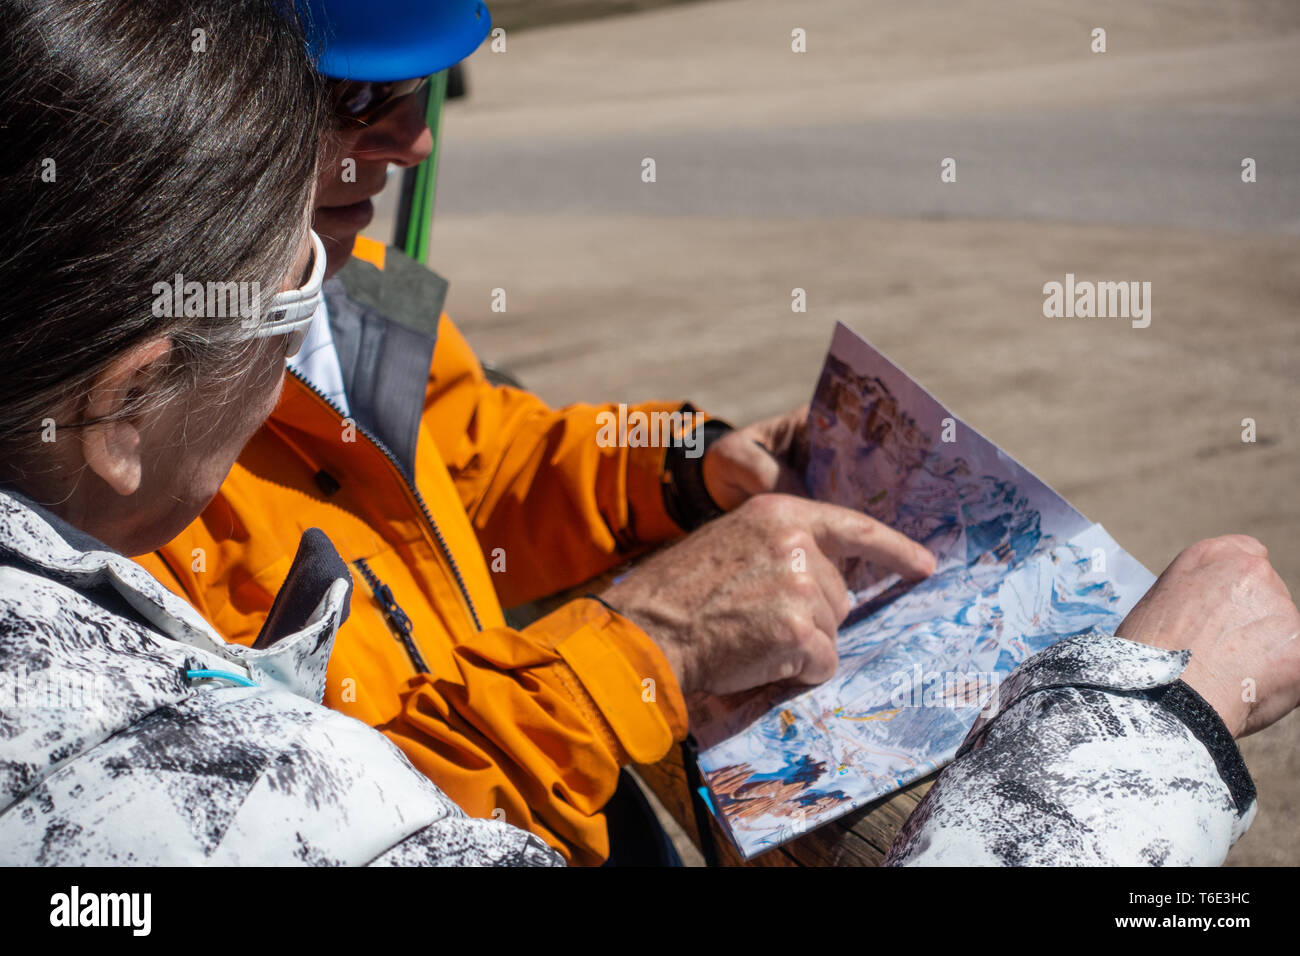 Two skiers looking at a piste map - Stock Image